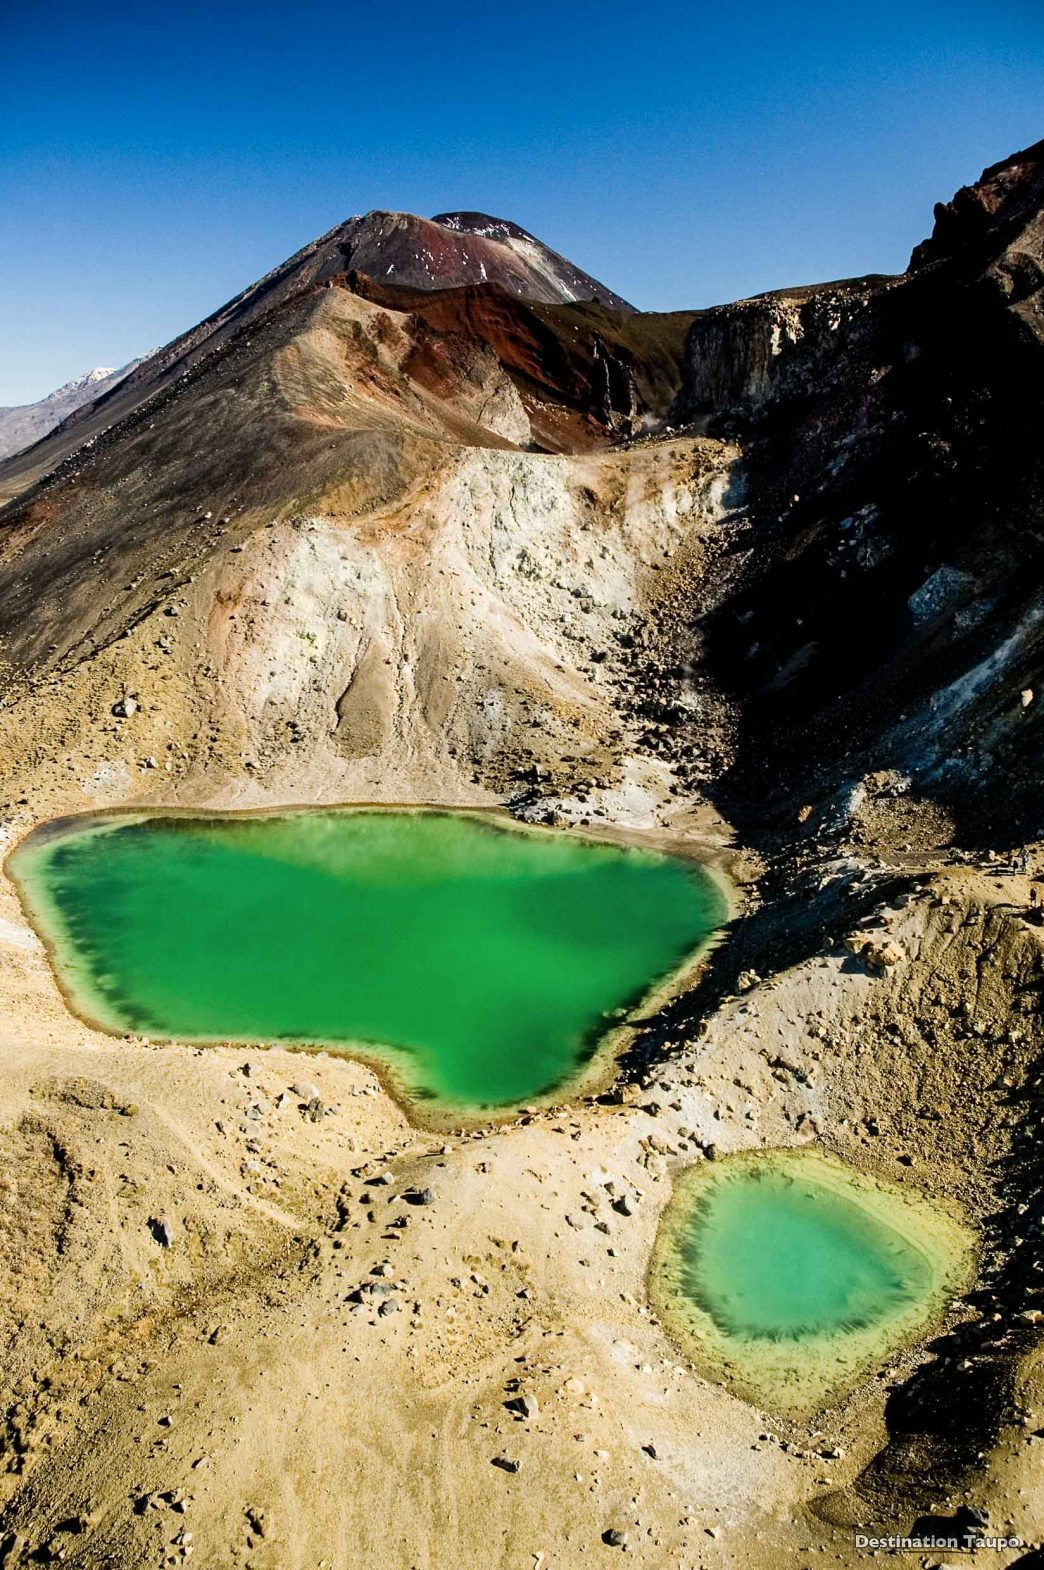 The Emerald Lakes, Ruapehu, as seen from the Tongariro Crossing, New Zealand.